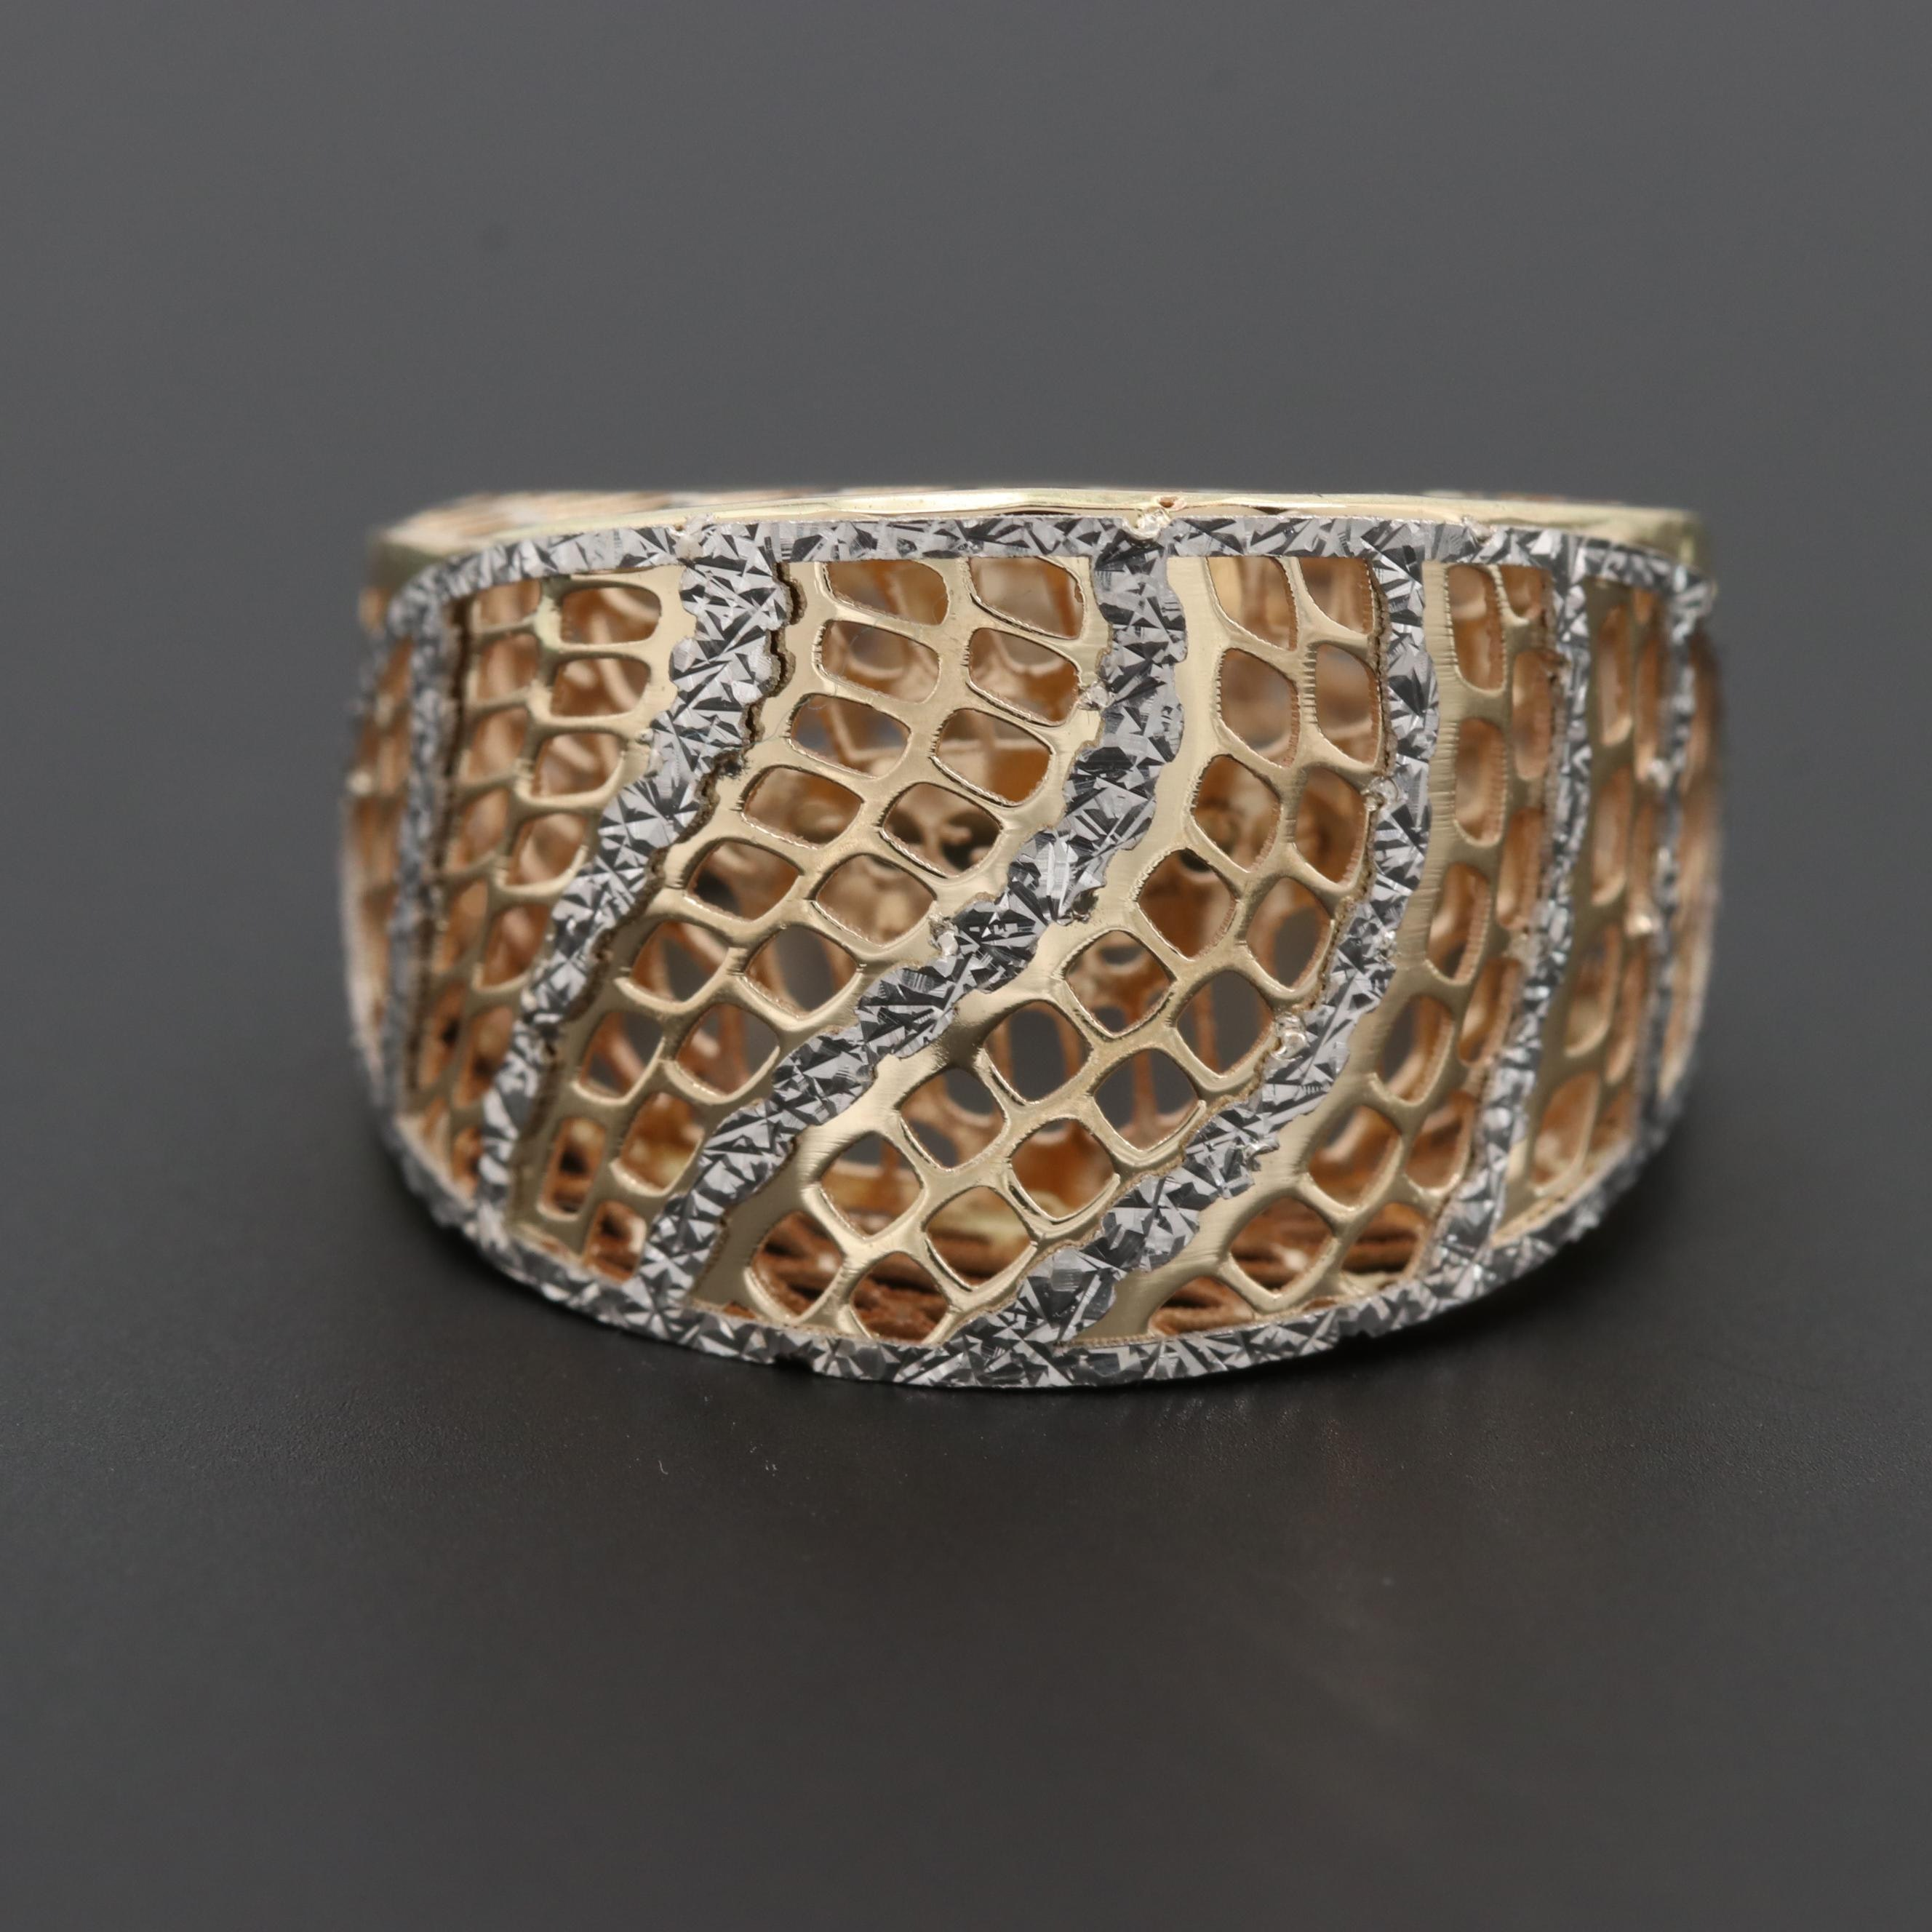 14K Yellow Gold Openwork Ring with Diamond Cut White Gold Accents